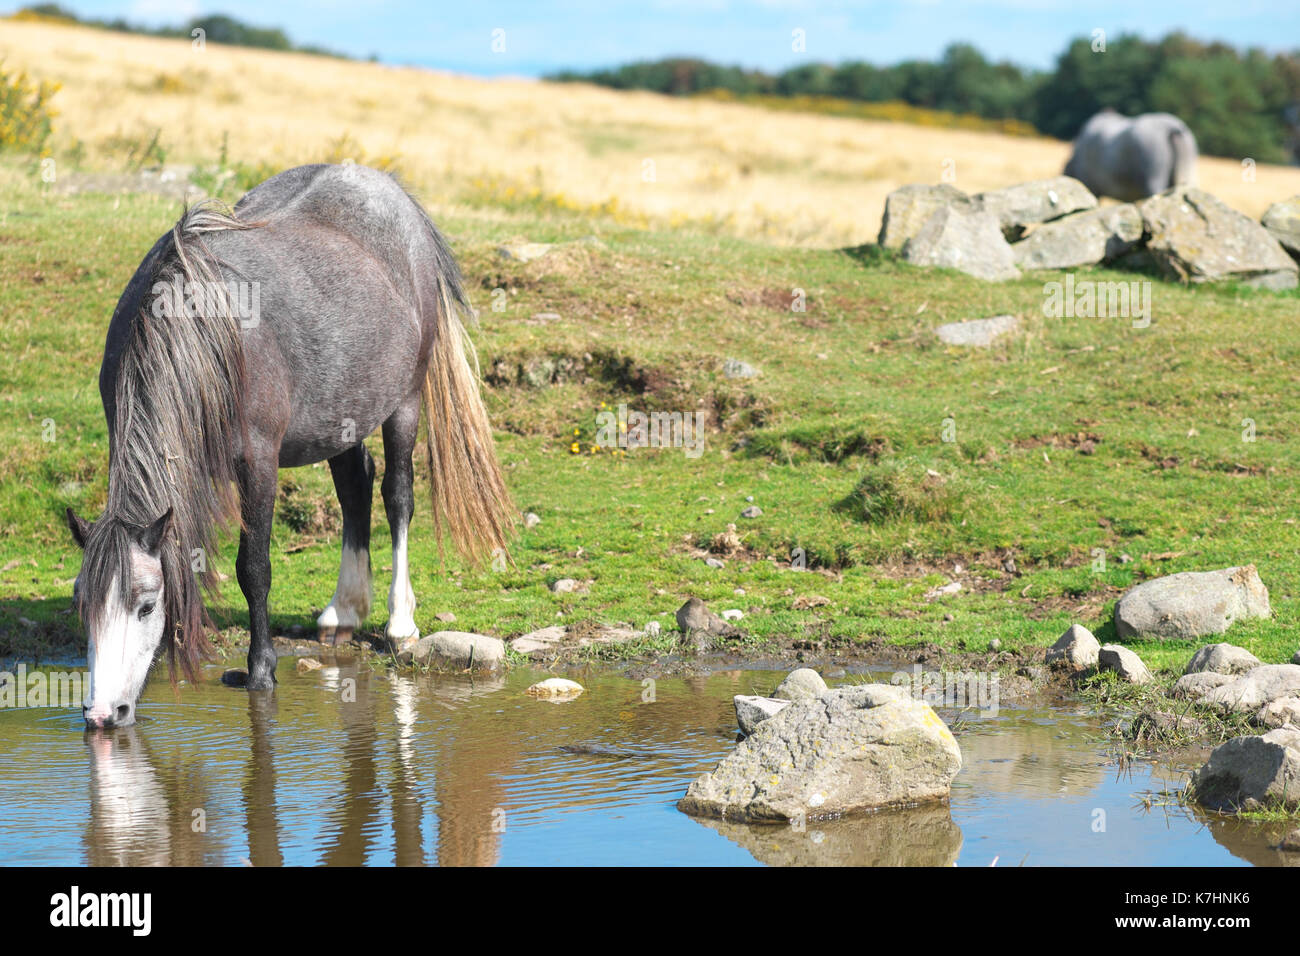 Hergest Ridge, Herefordshire, UK September, 2017. - A beautiful early autumn afternoon with temperatues up to 15c on the 426m high Hergest Ridge - Hergest Ridge straddles the border with Wales and is home to a small herd of wild ponies. Credit: Steven May/Alamy Live News - Stock Image